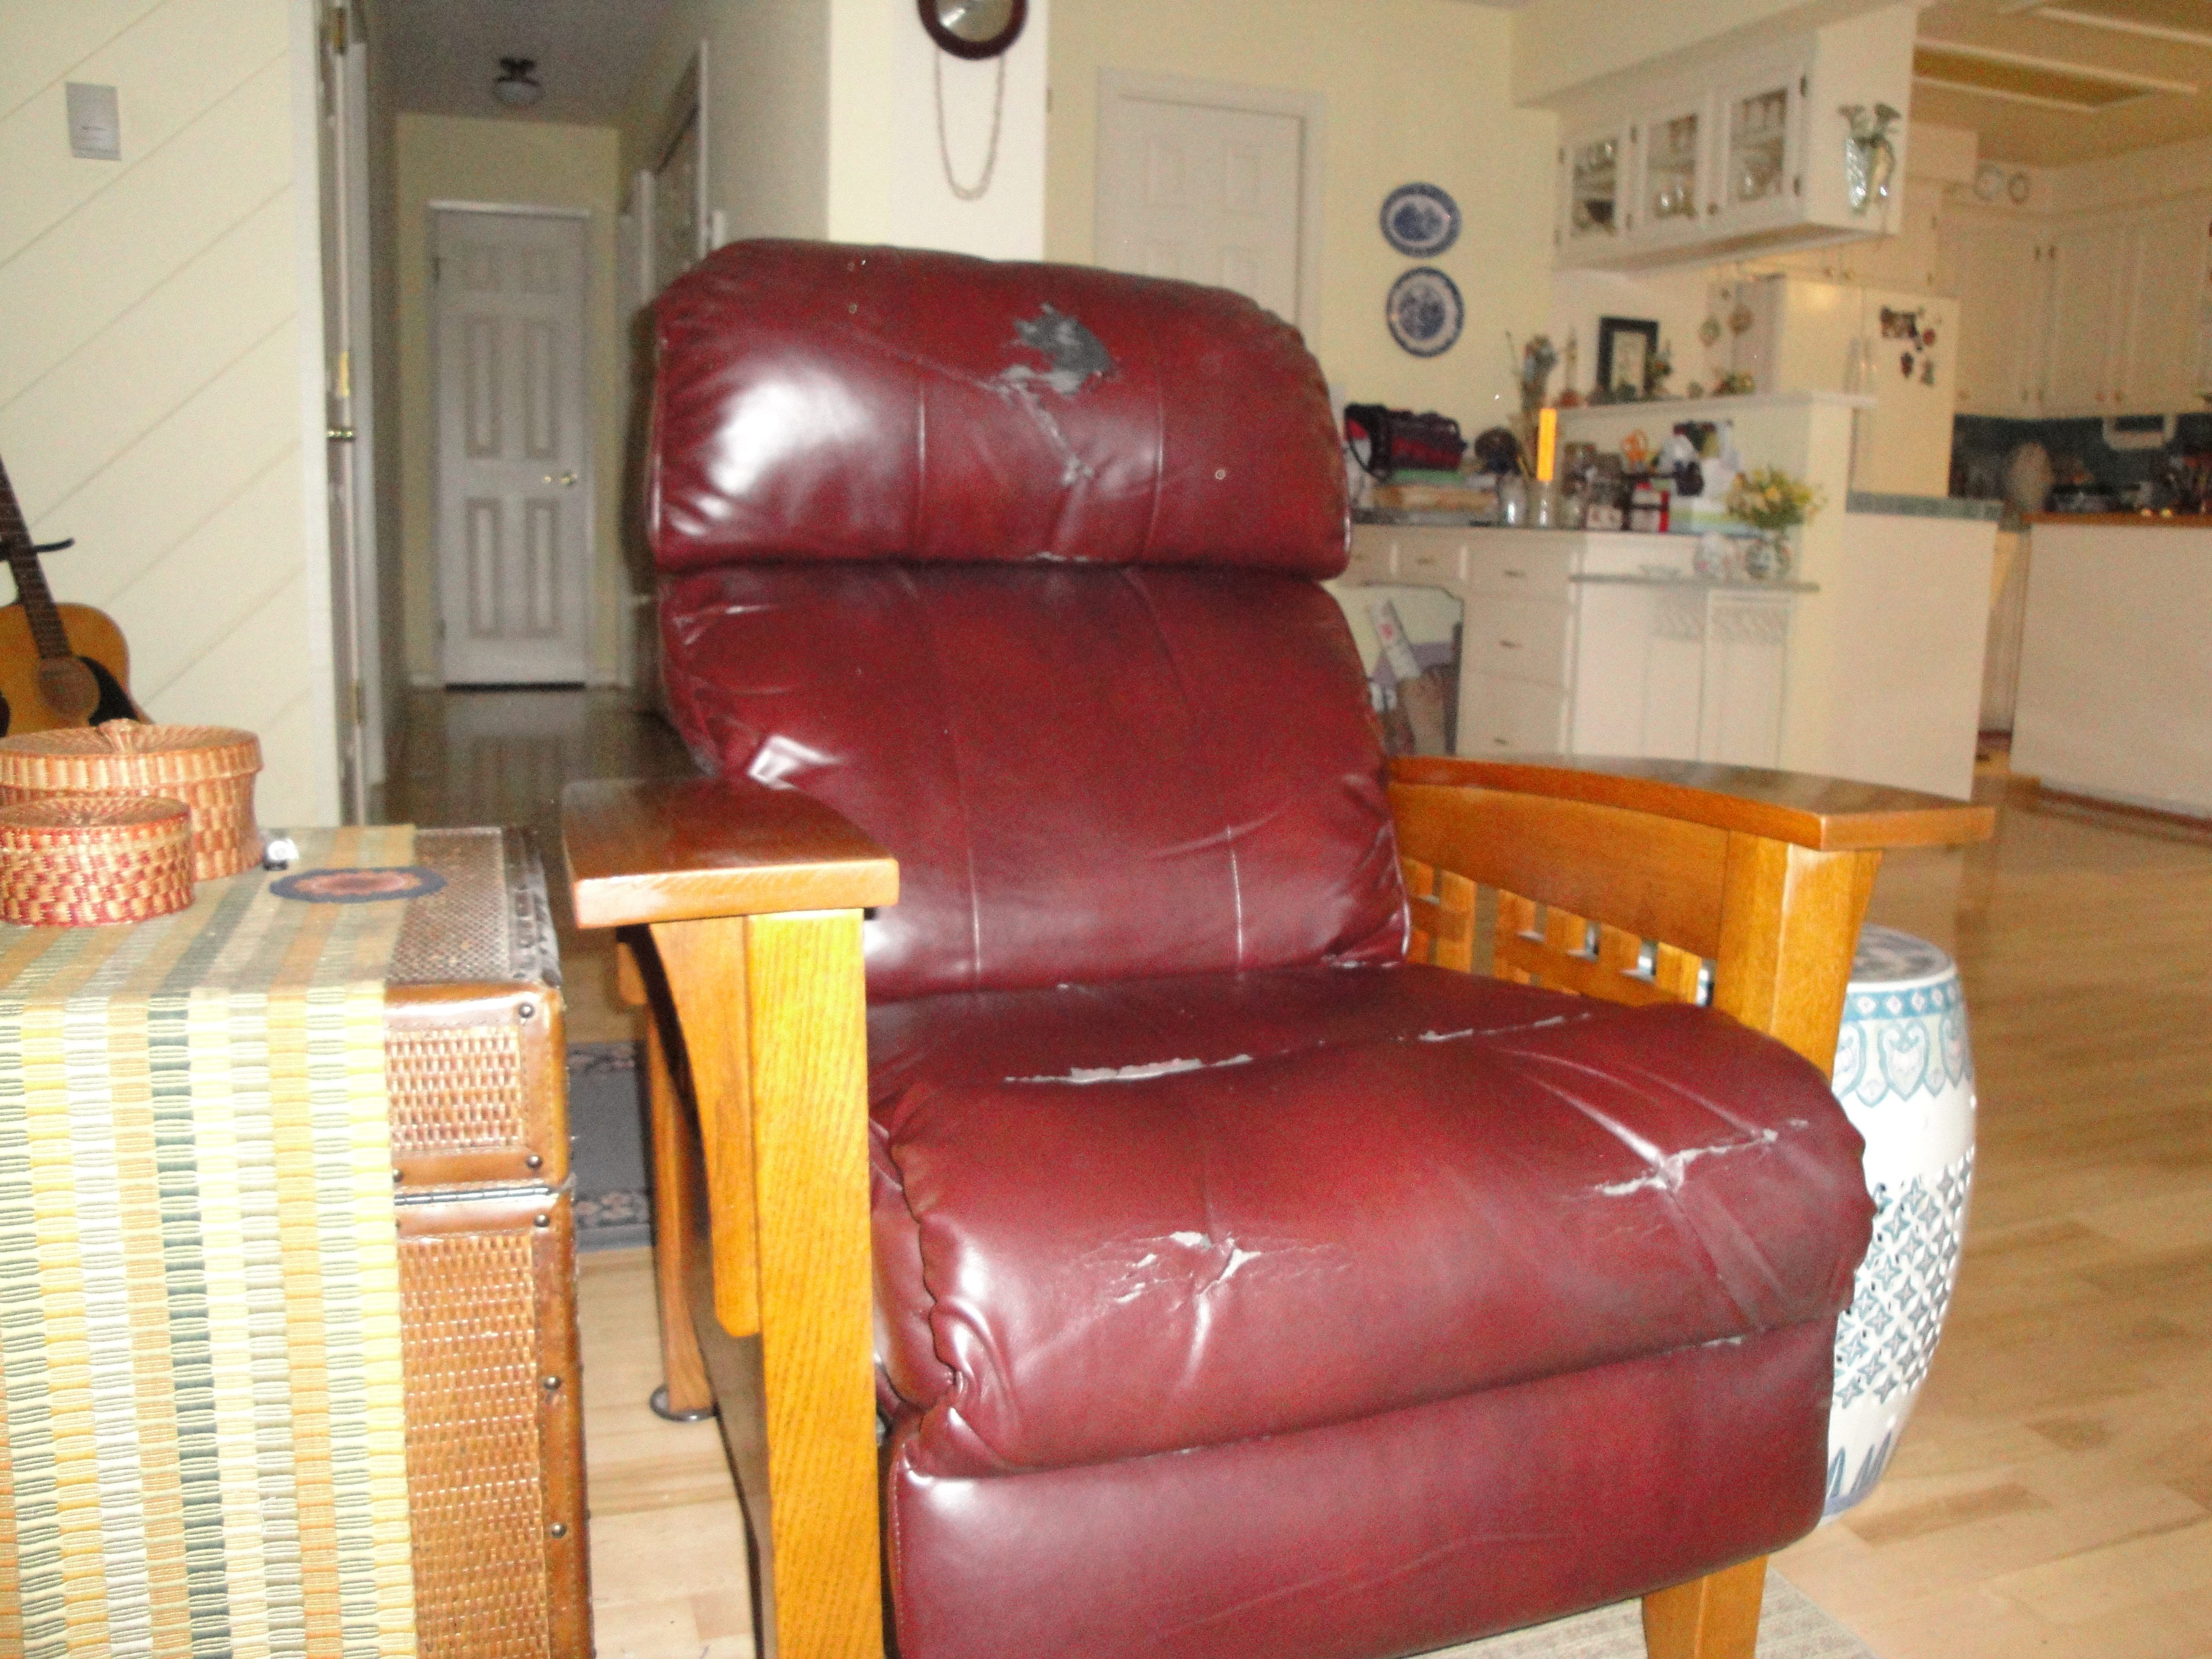 La z boy recliners buy one get one - View Both Images